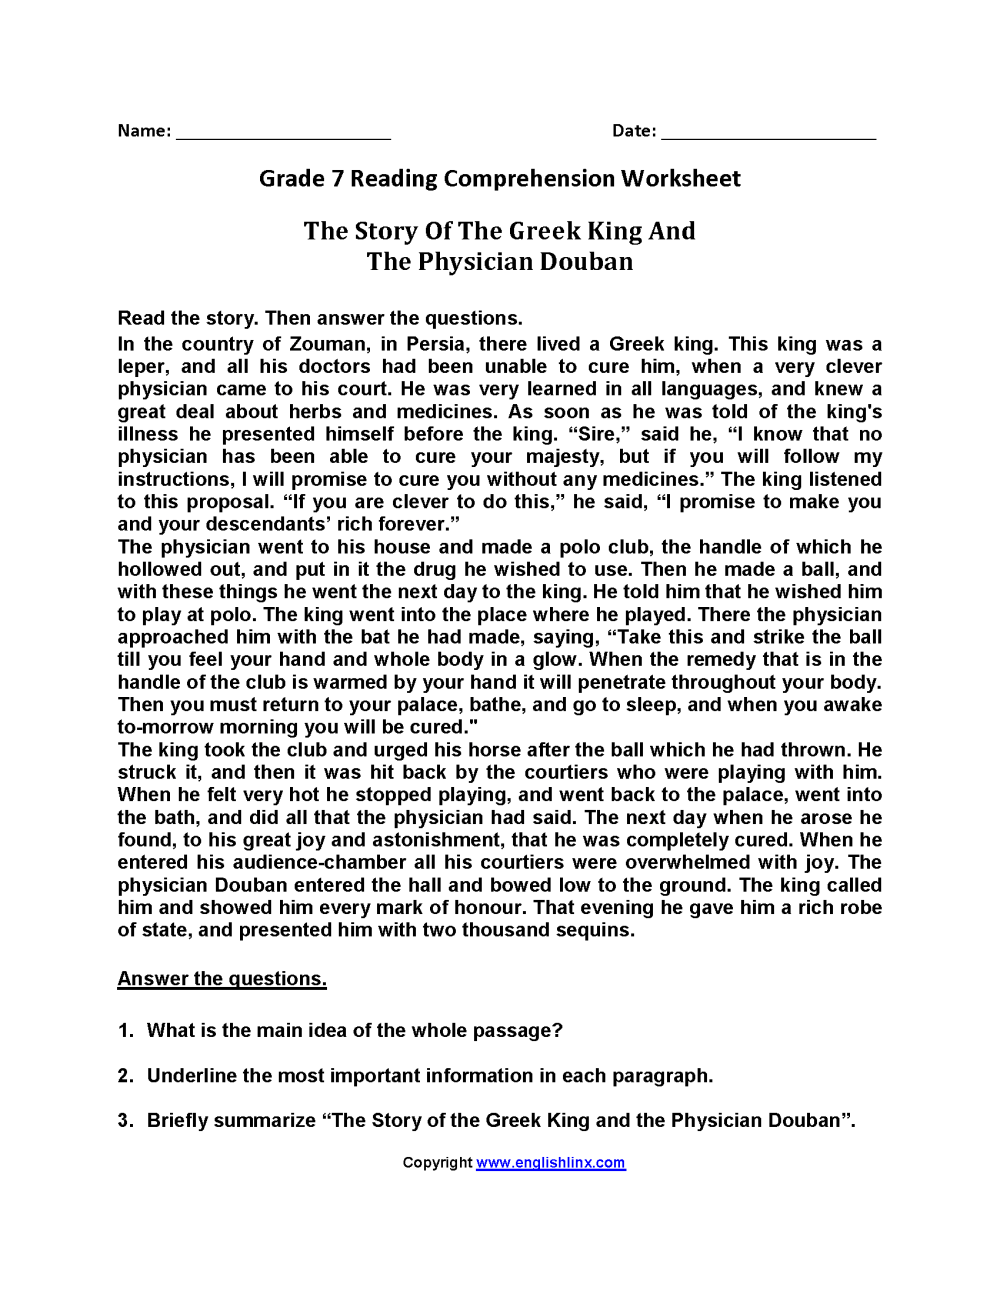 medium resolution of 20 Best Reading Comprehension Worksheets Printable 7th Grade images on Best  Worksheets Collection